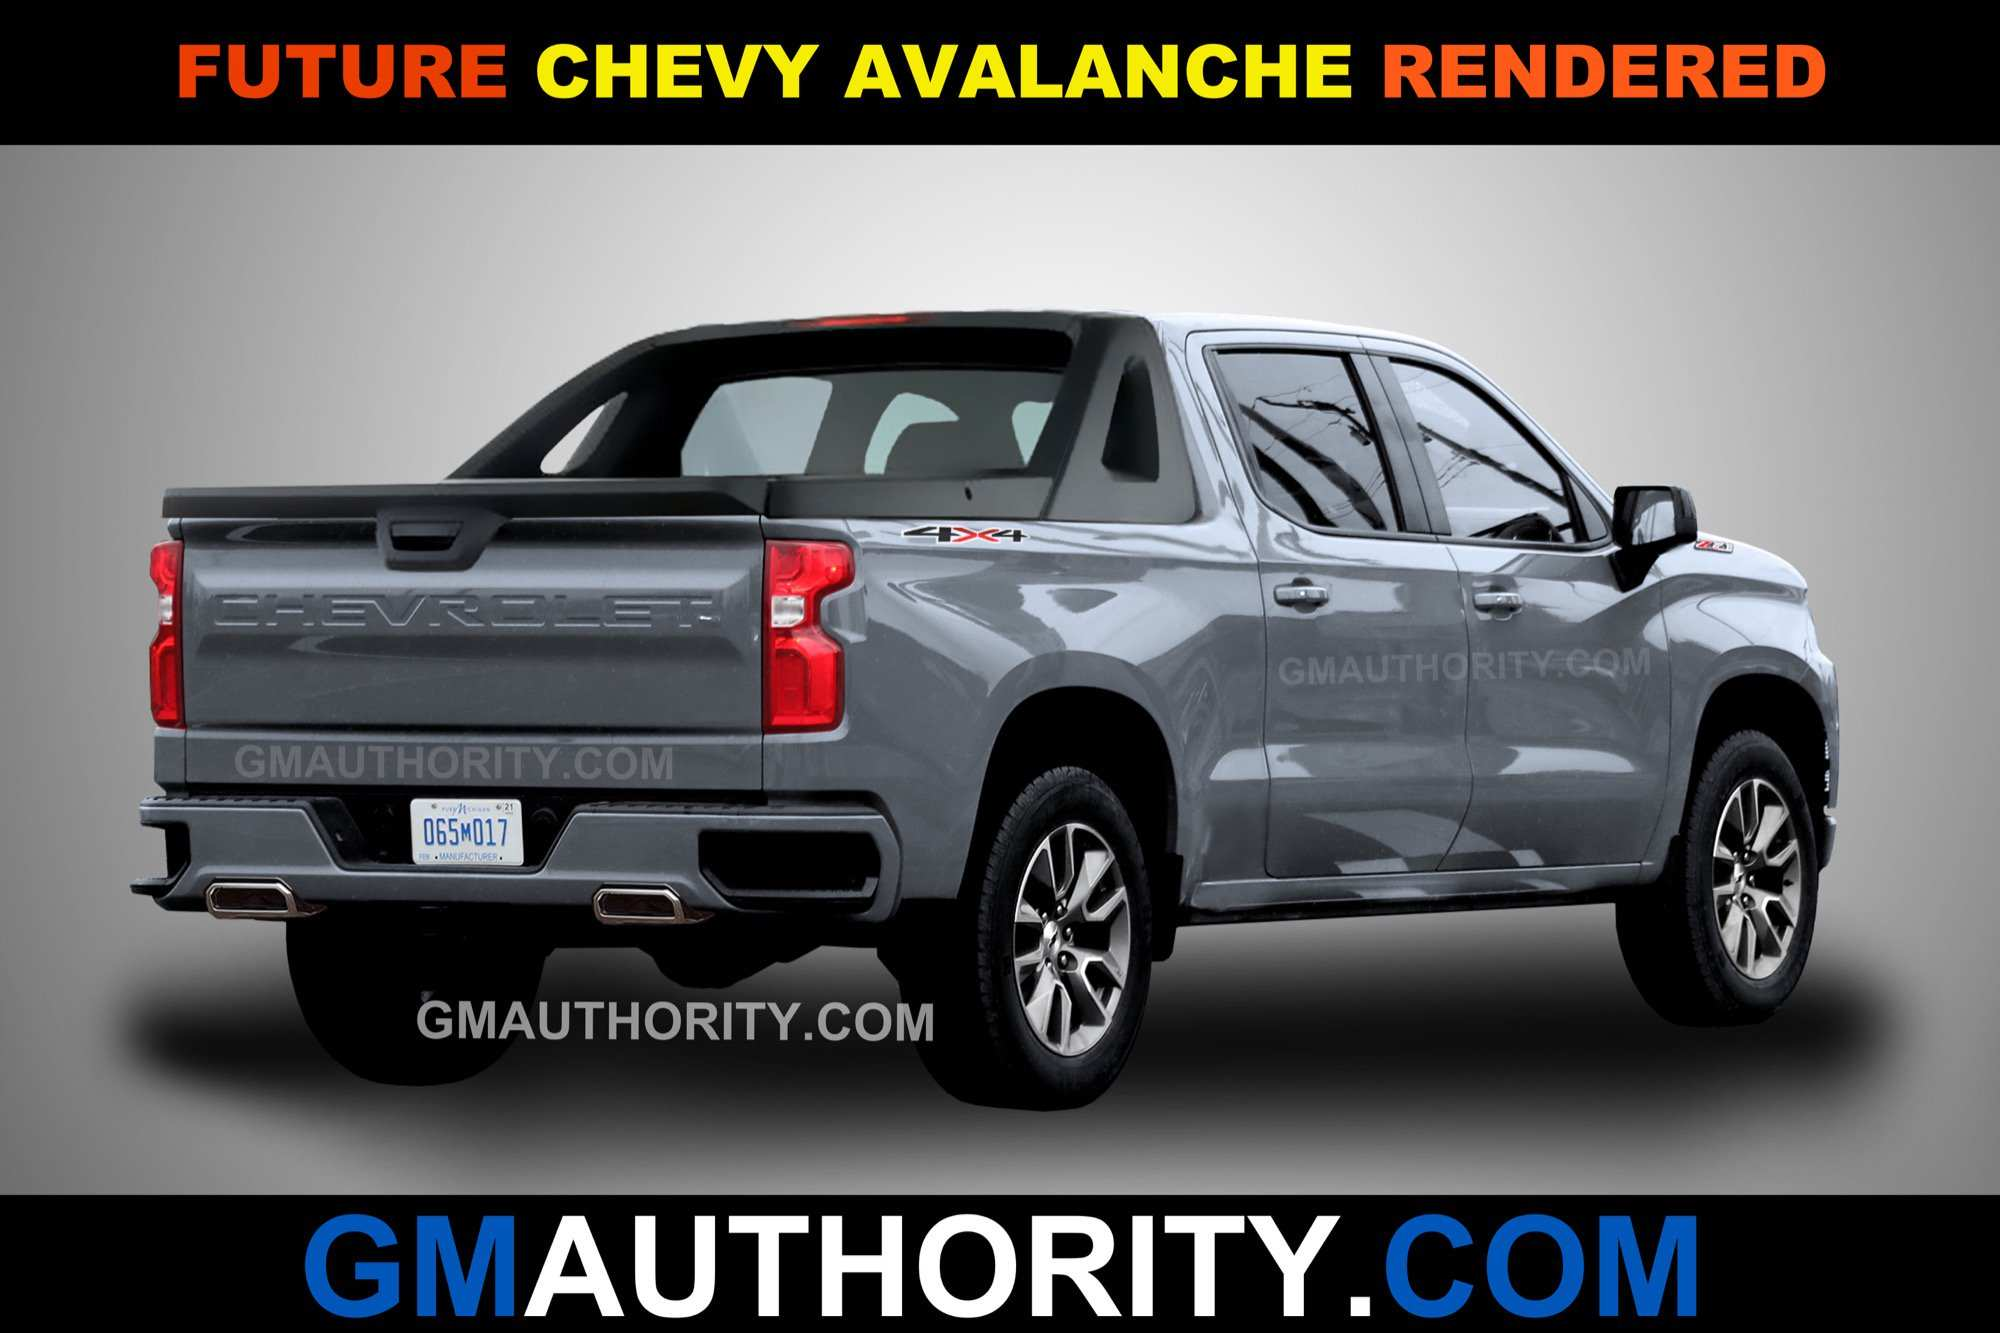 53 New Chevrolet Avalanche 2020 First Drive